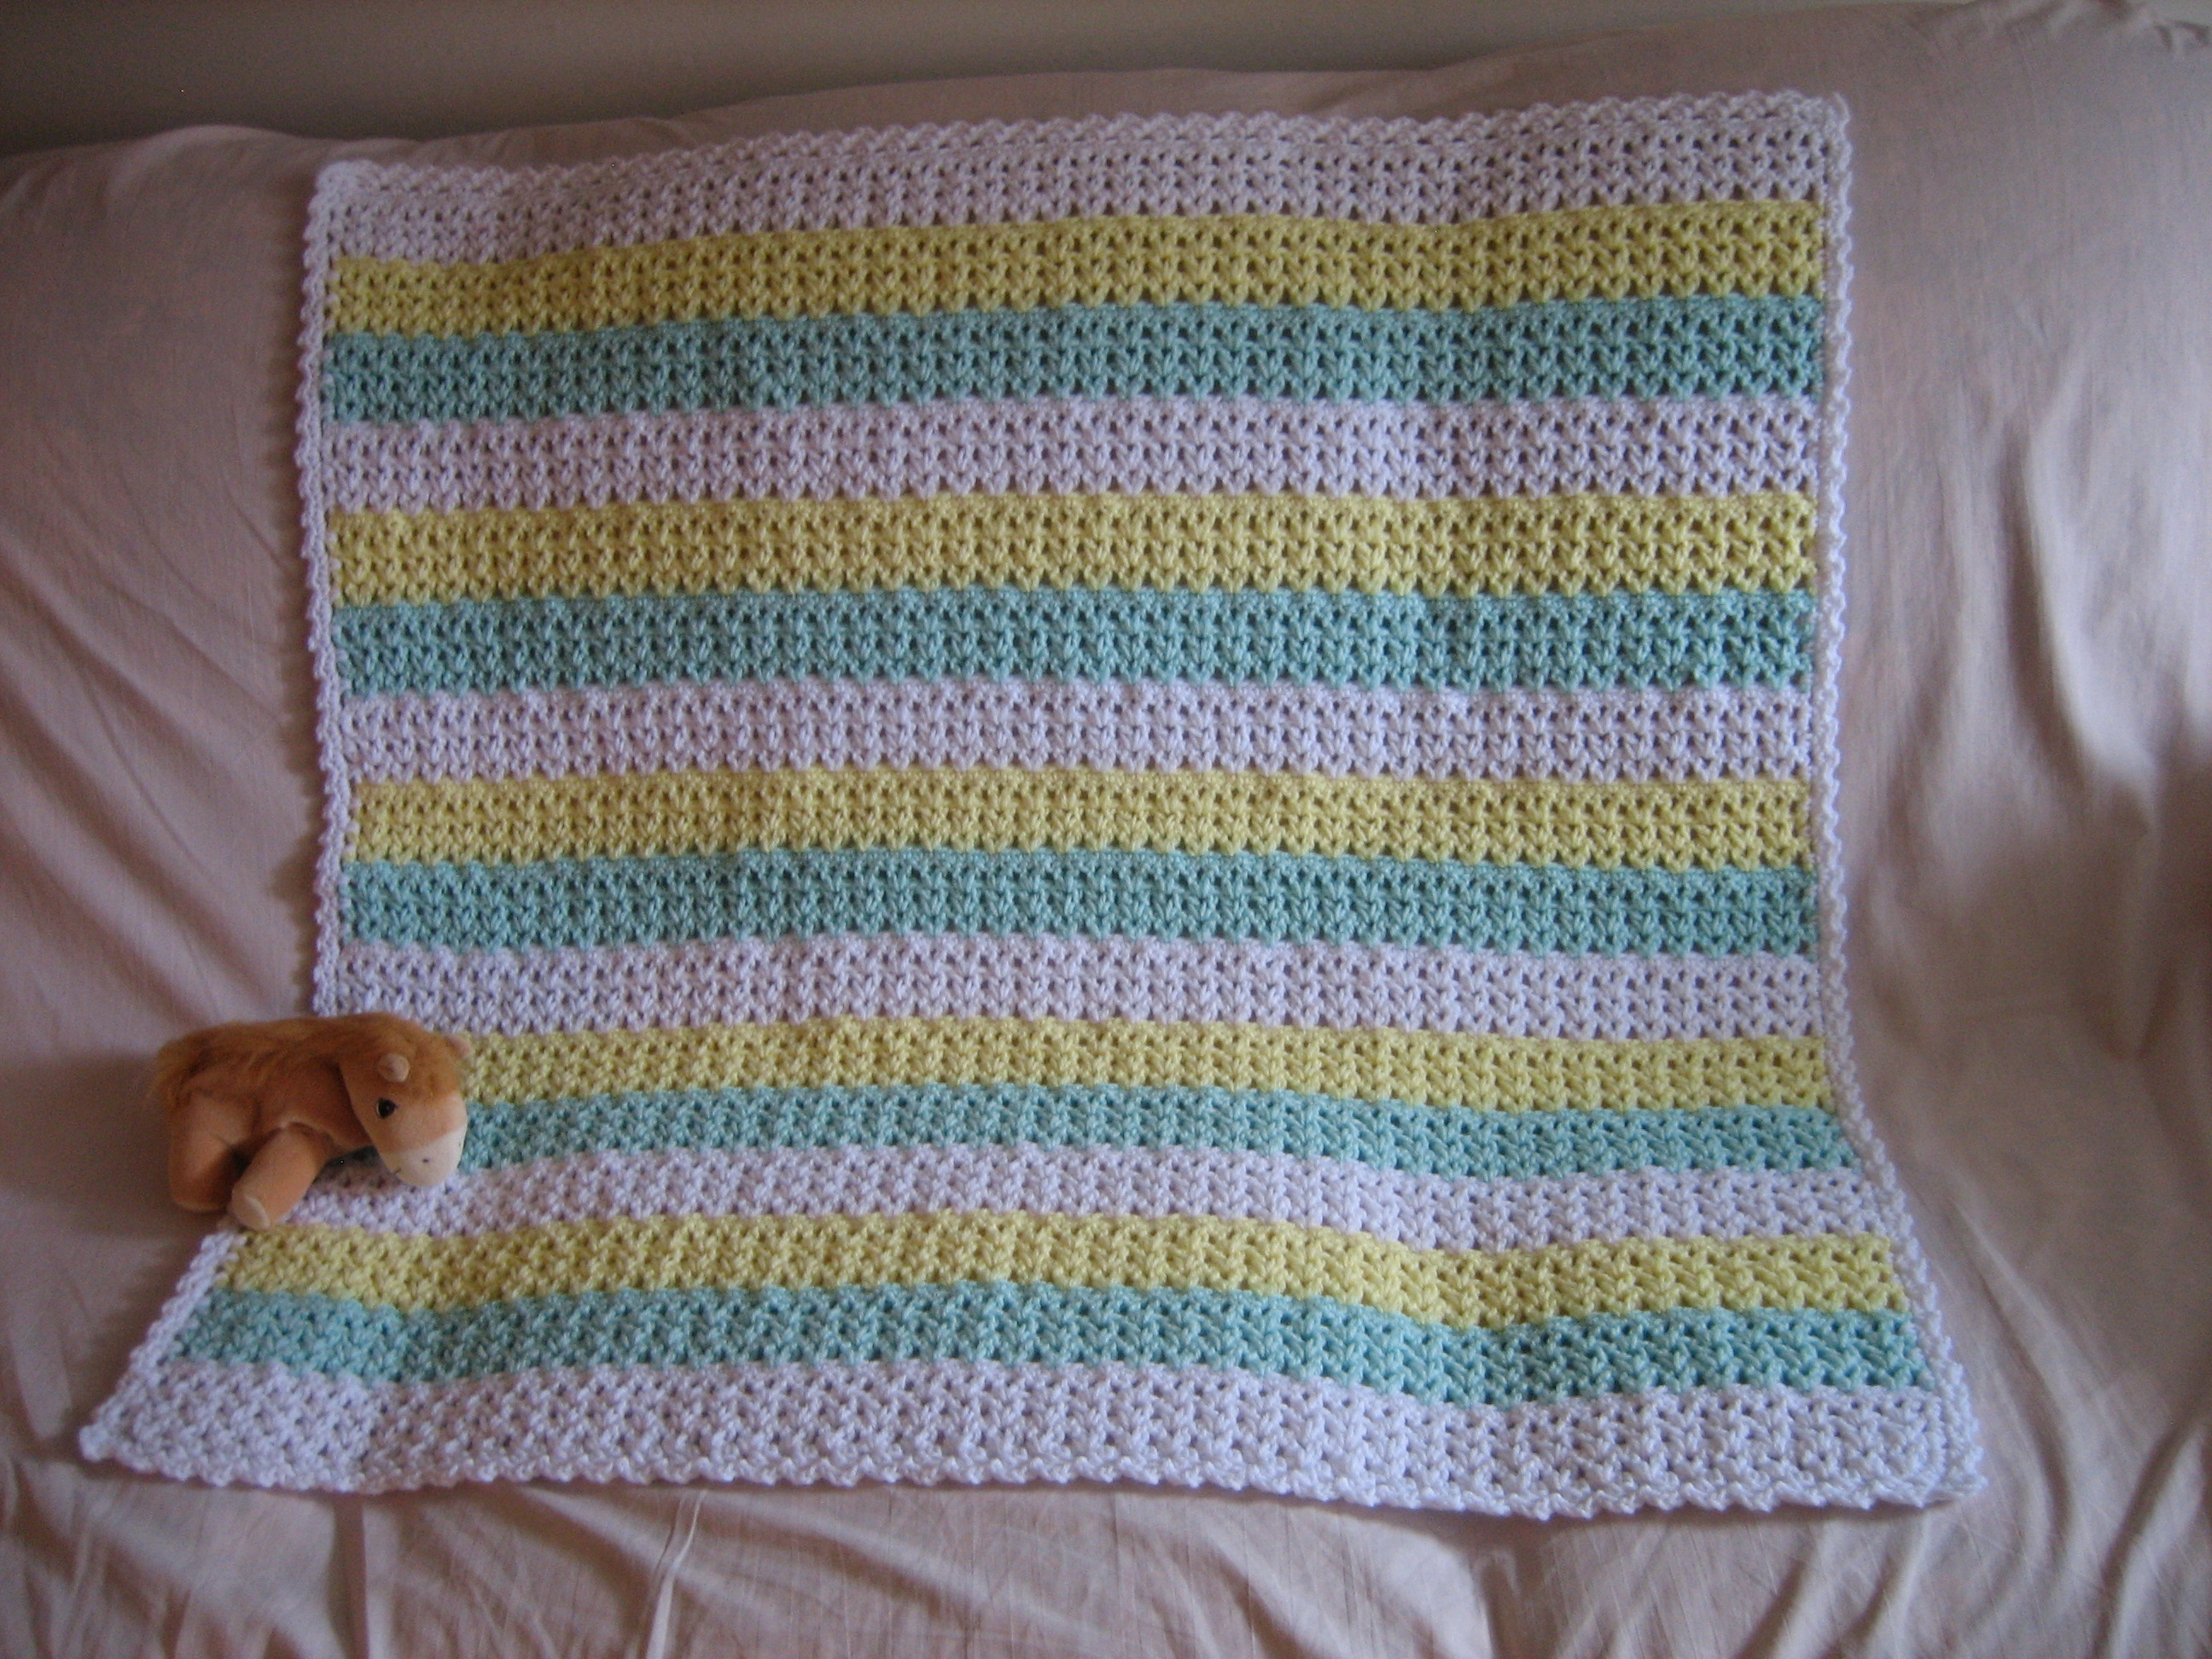 Begginer Crochet Projects Baby Blankets Striped Crochet Afghan Favecrafts